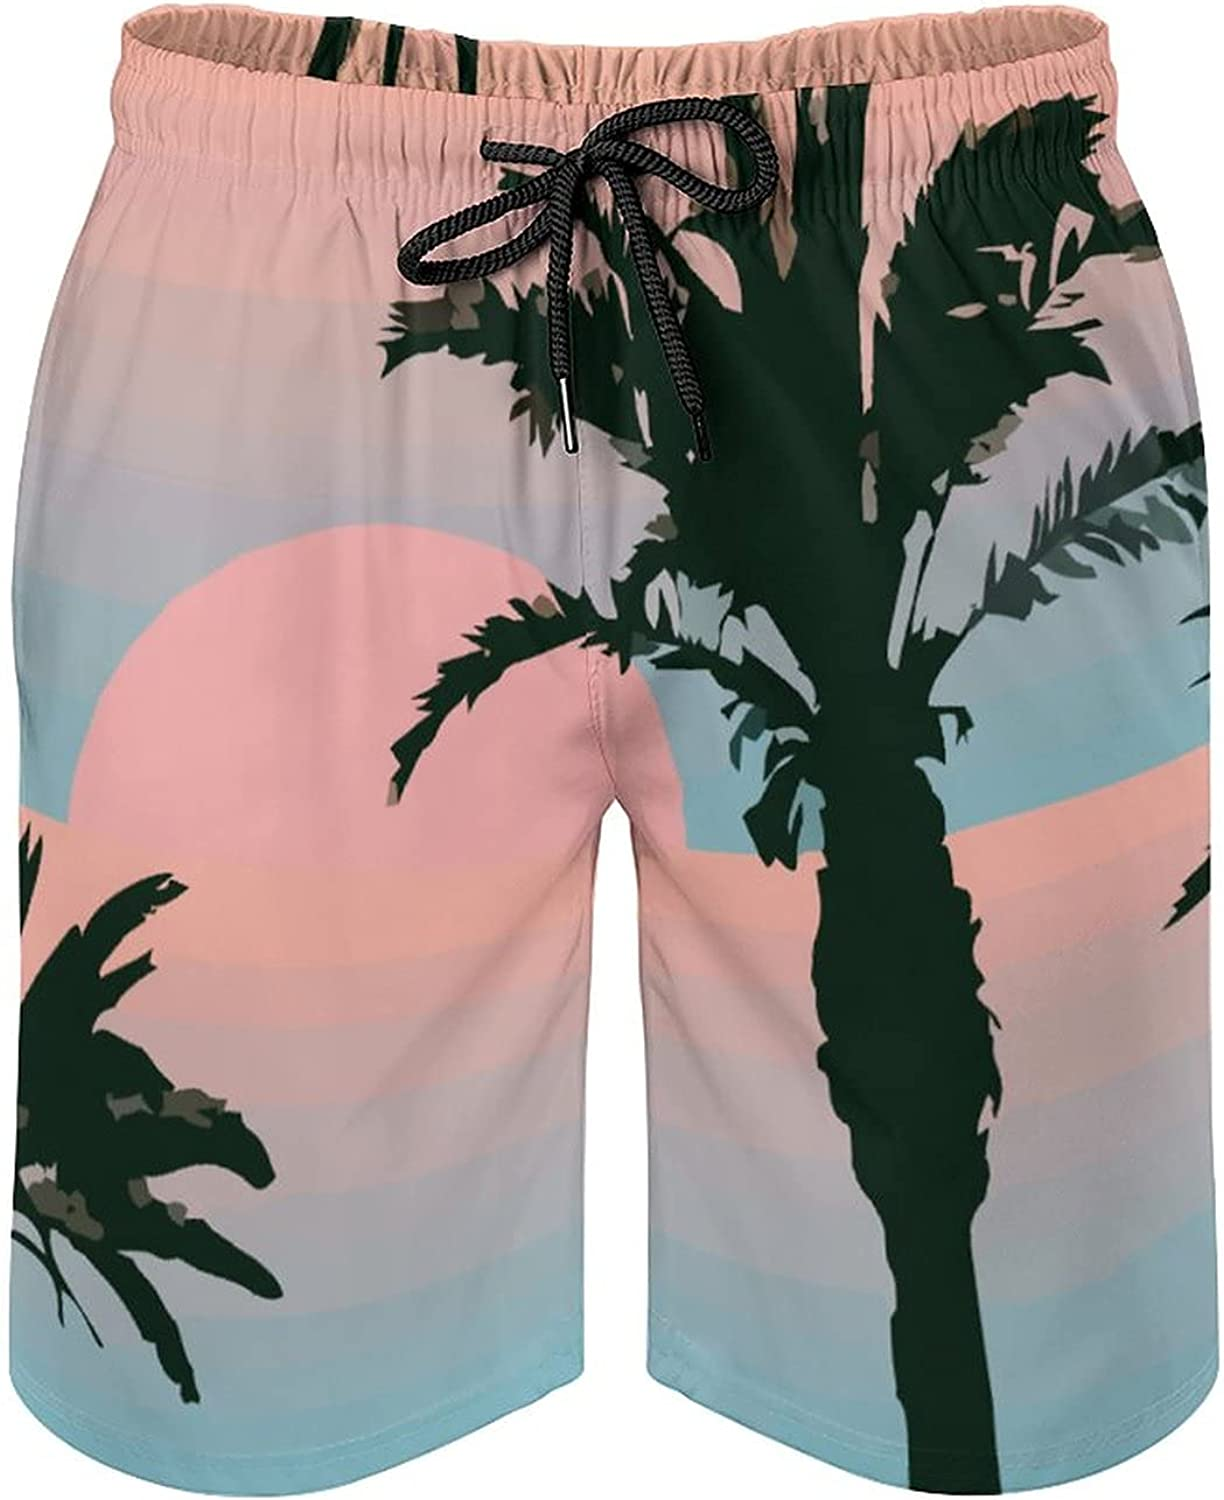 Men's Quick Dry Board Shorts with Mesh Lining Palm Tree Ocean